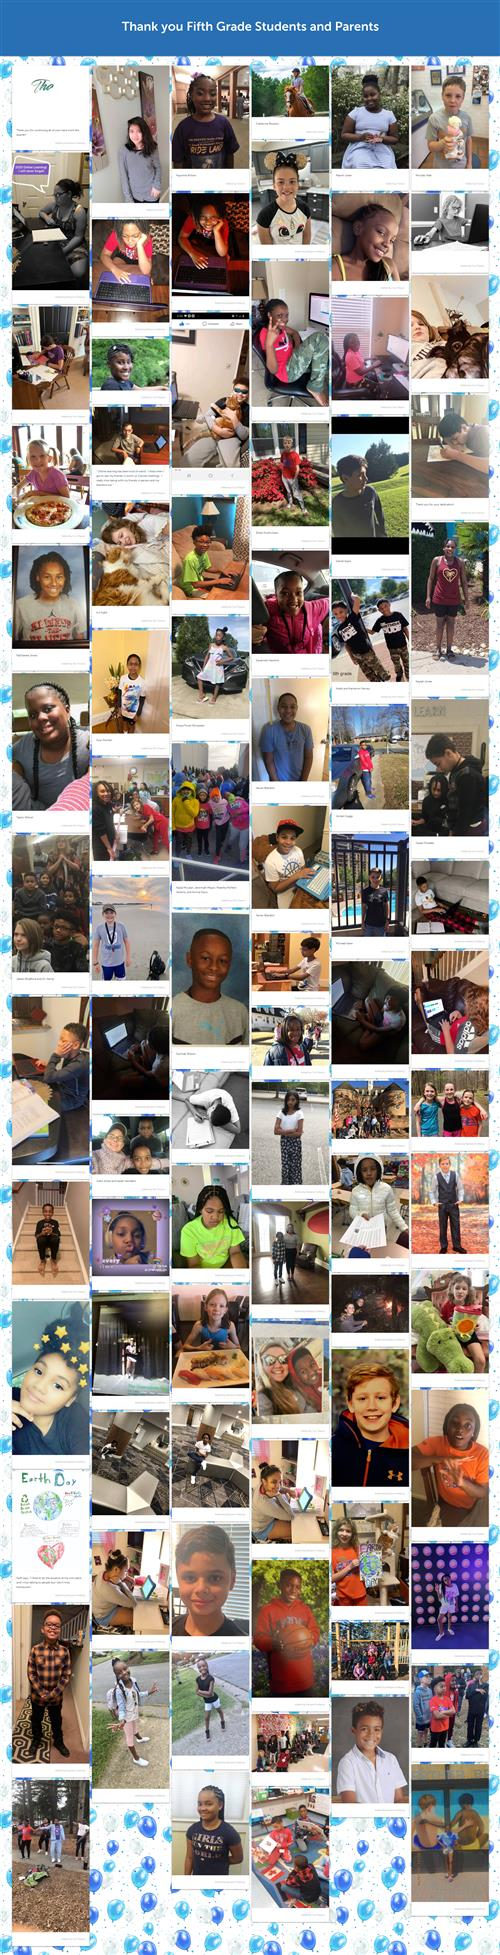 th grade Kudoboard showing each student in distance learning